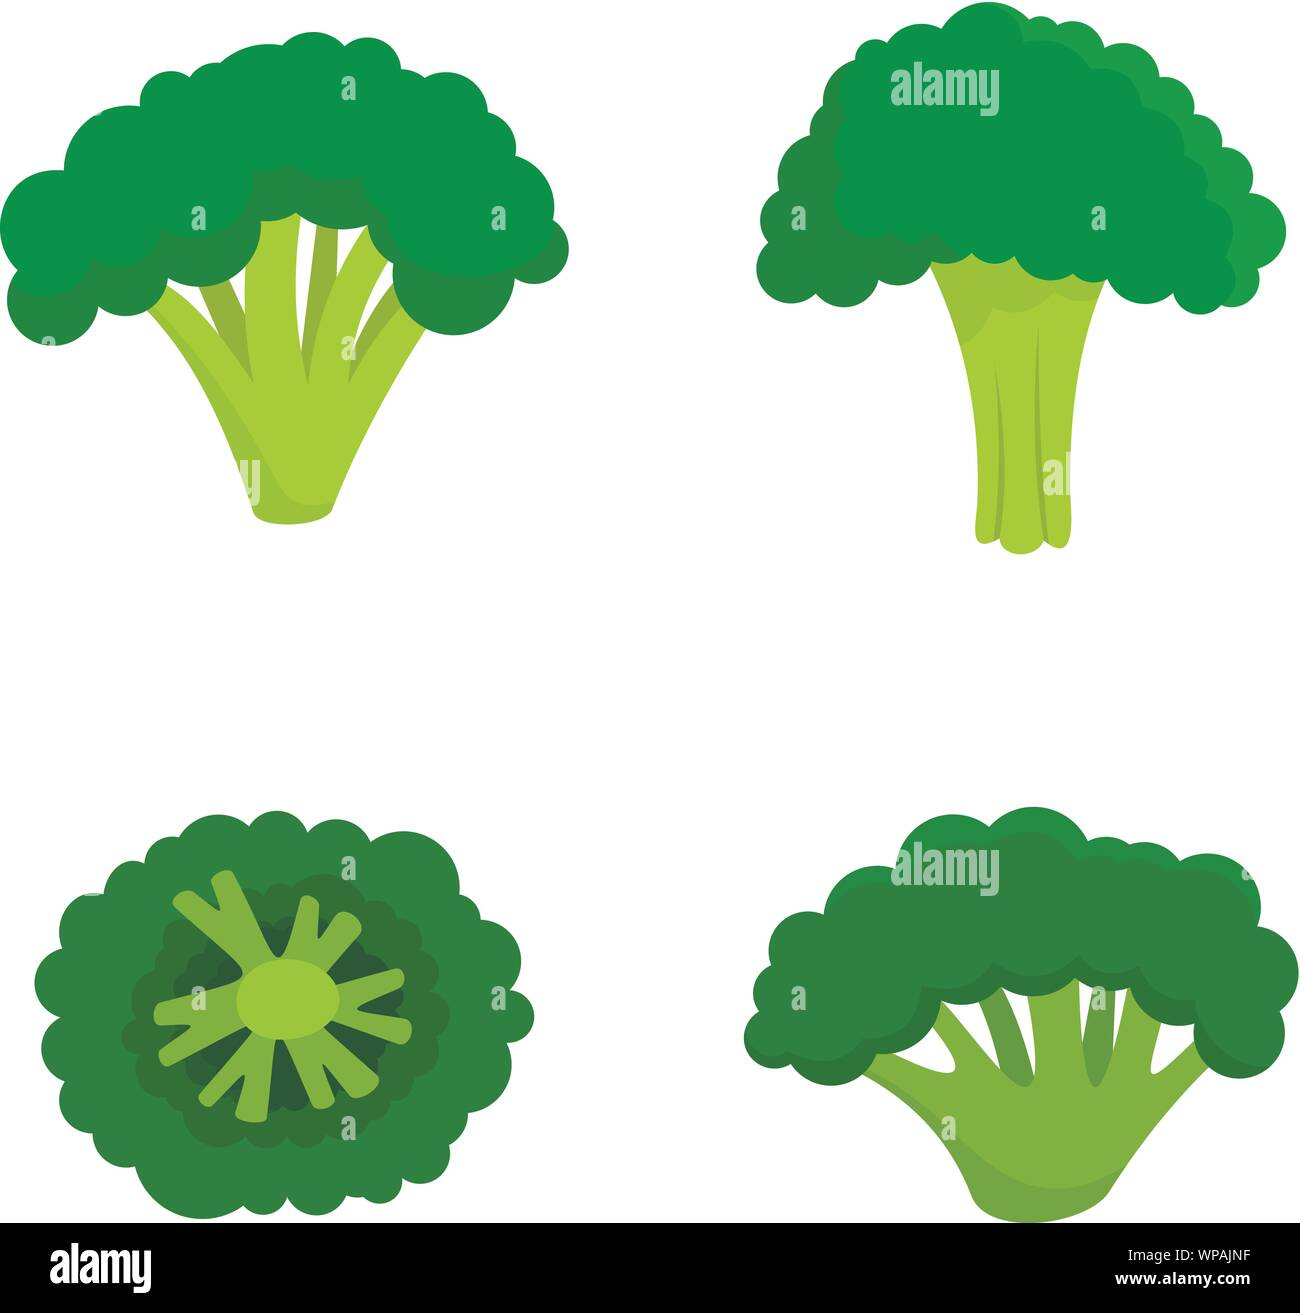 green broccoli icon set flat set of green broccoli vector icons for web design stock vector image art alamy https www alamy com green broccoli icon set flat set of green broccoli vector icons for web design image271912187 html